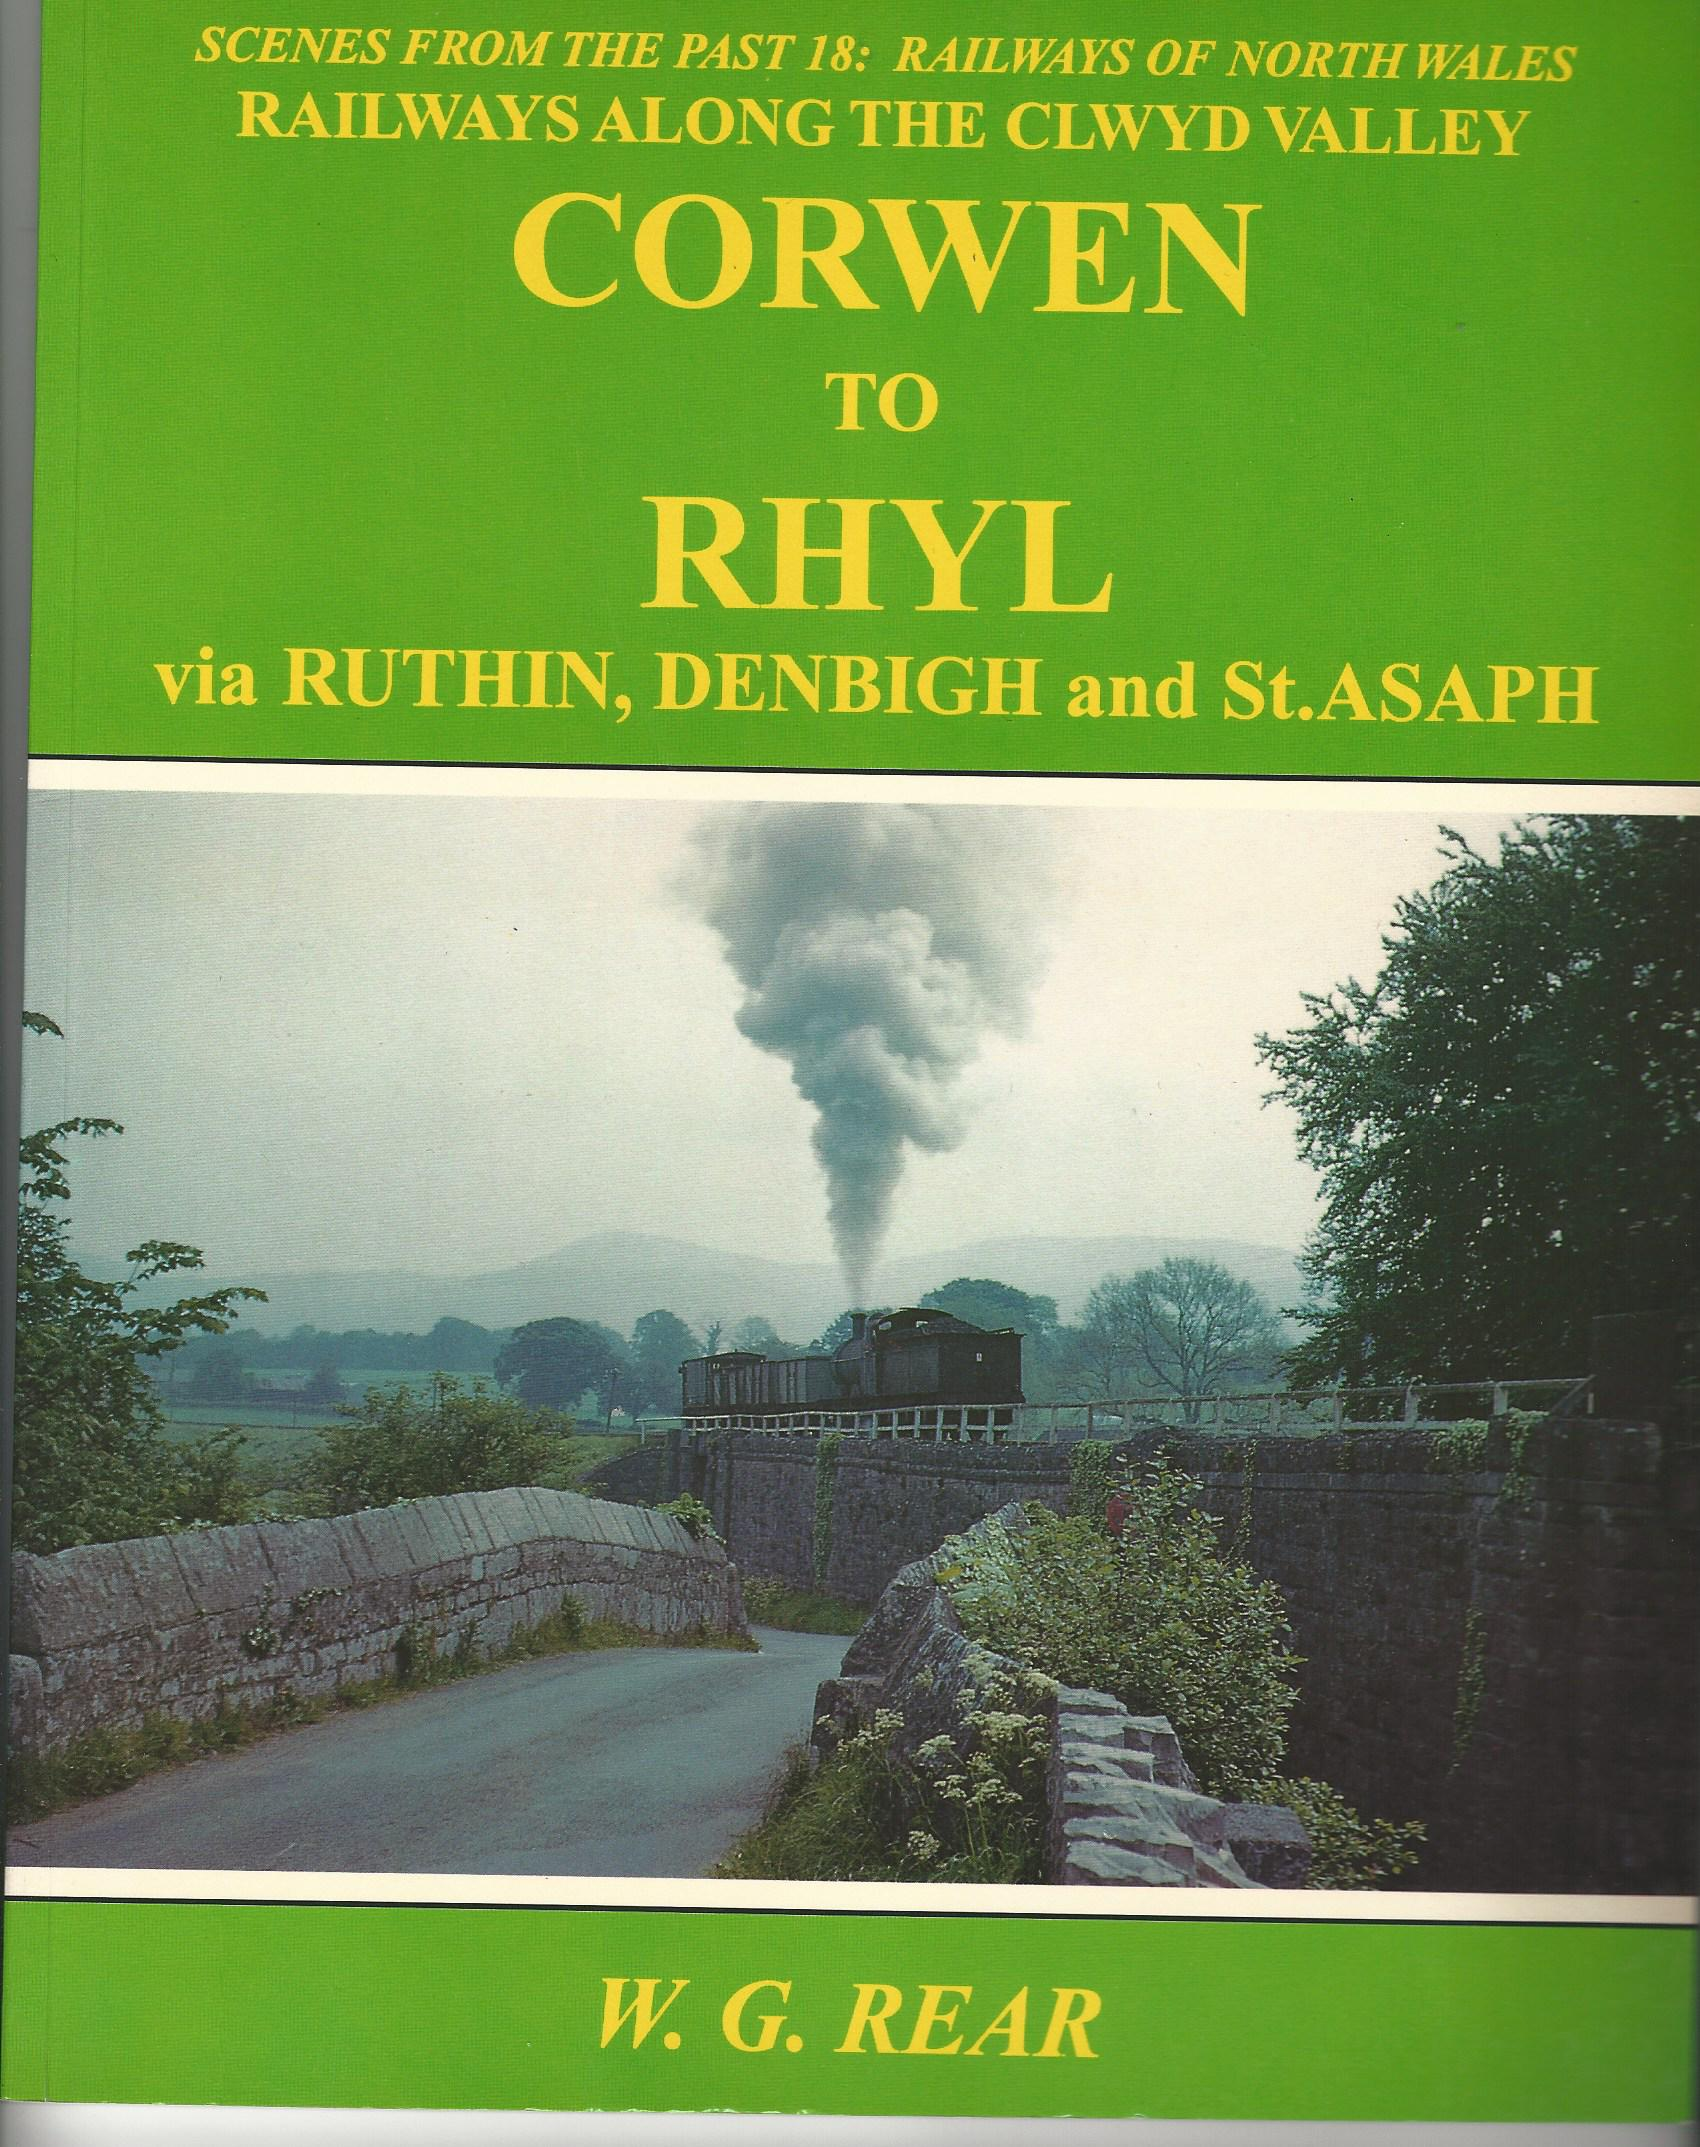 Image for Railways of North Wales (Scenes from the Past): Corwen to Rhyl via Ruthin, Denbigh and St Asaph.